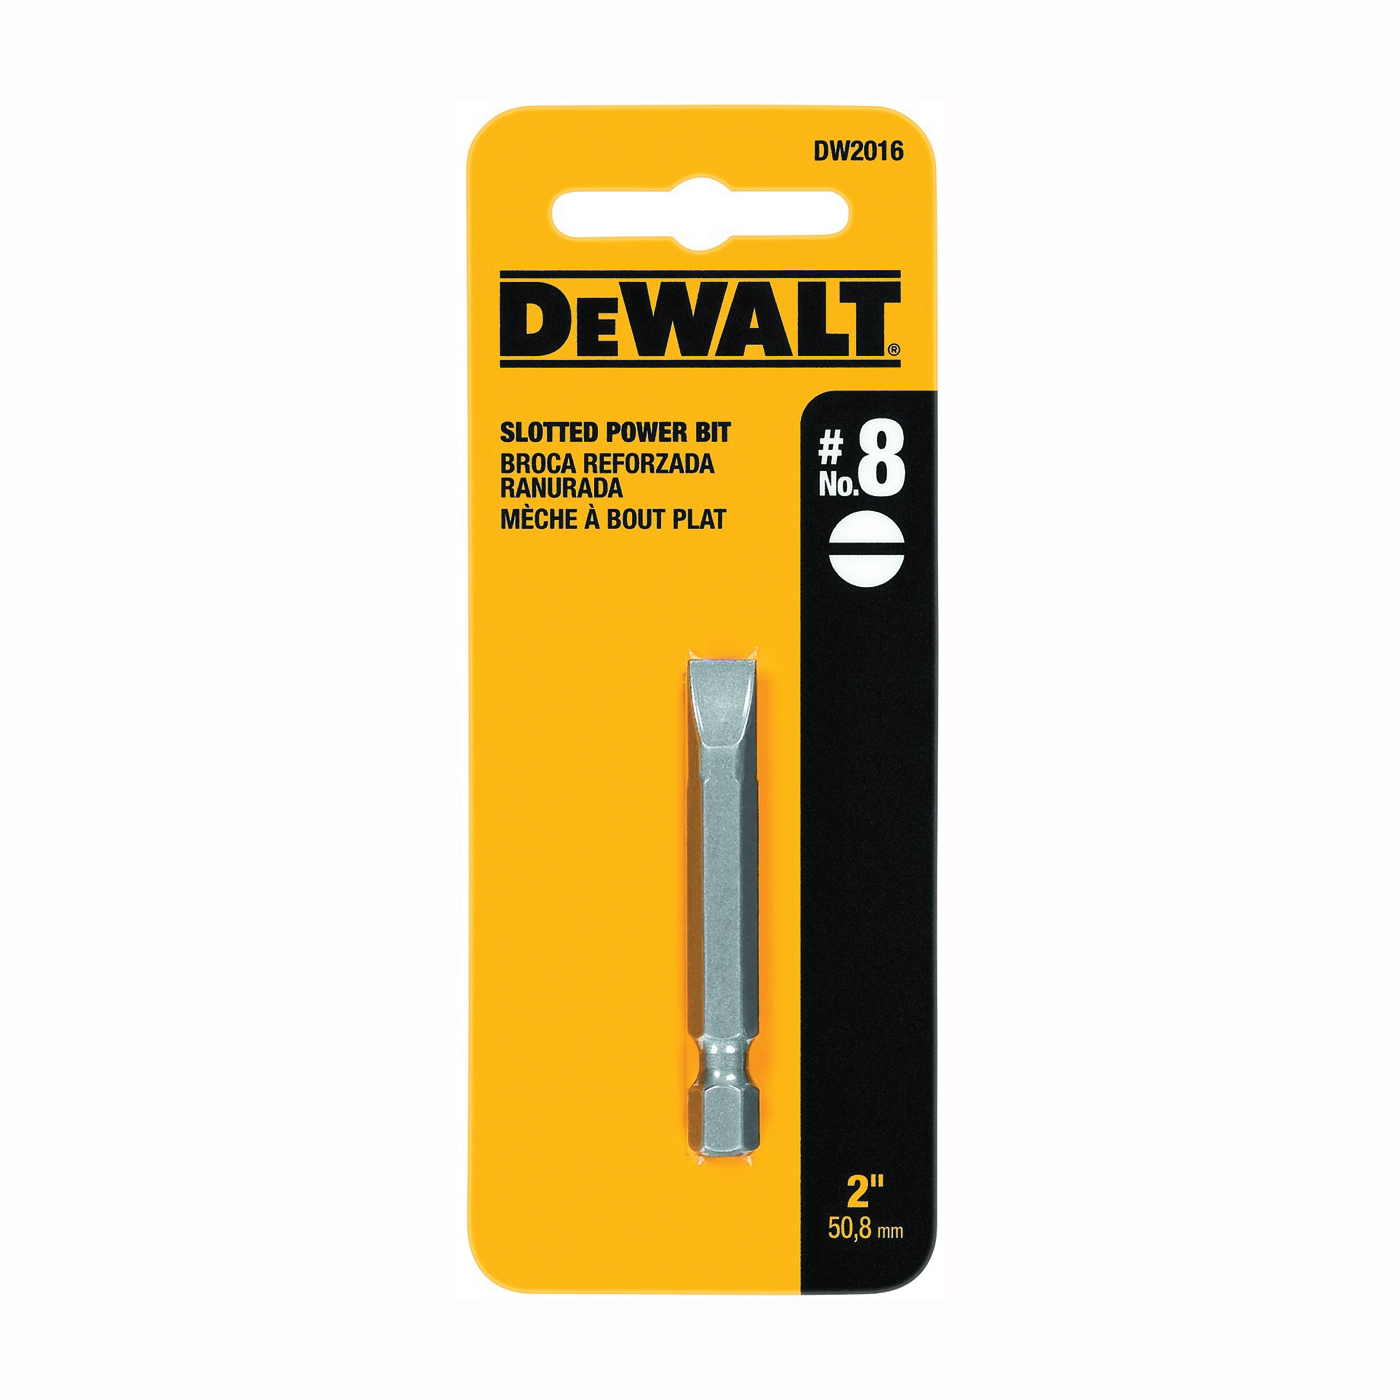 Picture of DeWALT DW2016 Power Bit, #8 Drive, Slotted Drive, 1/4 in Shank, Hex Shank, 2 in L, Steel